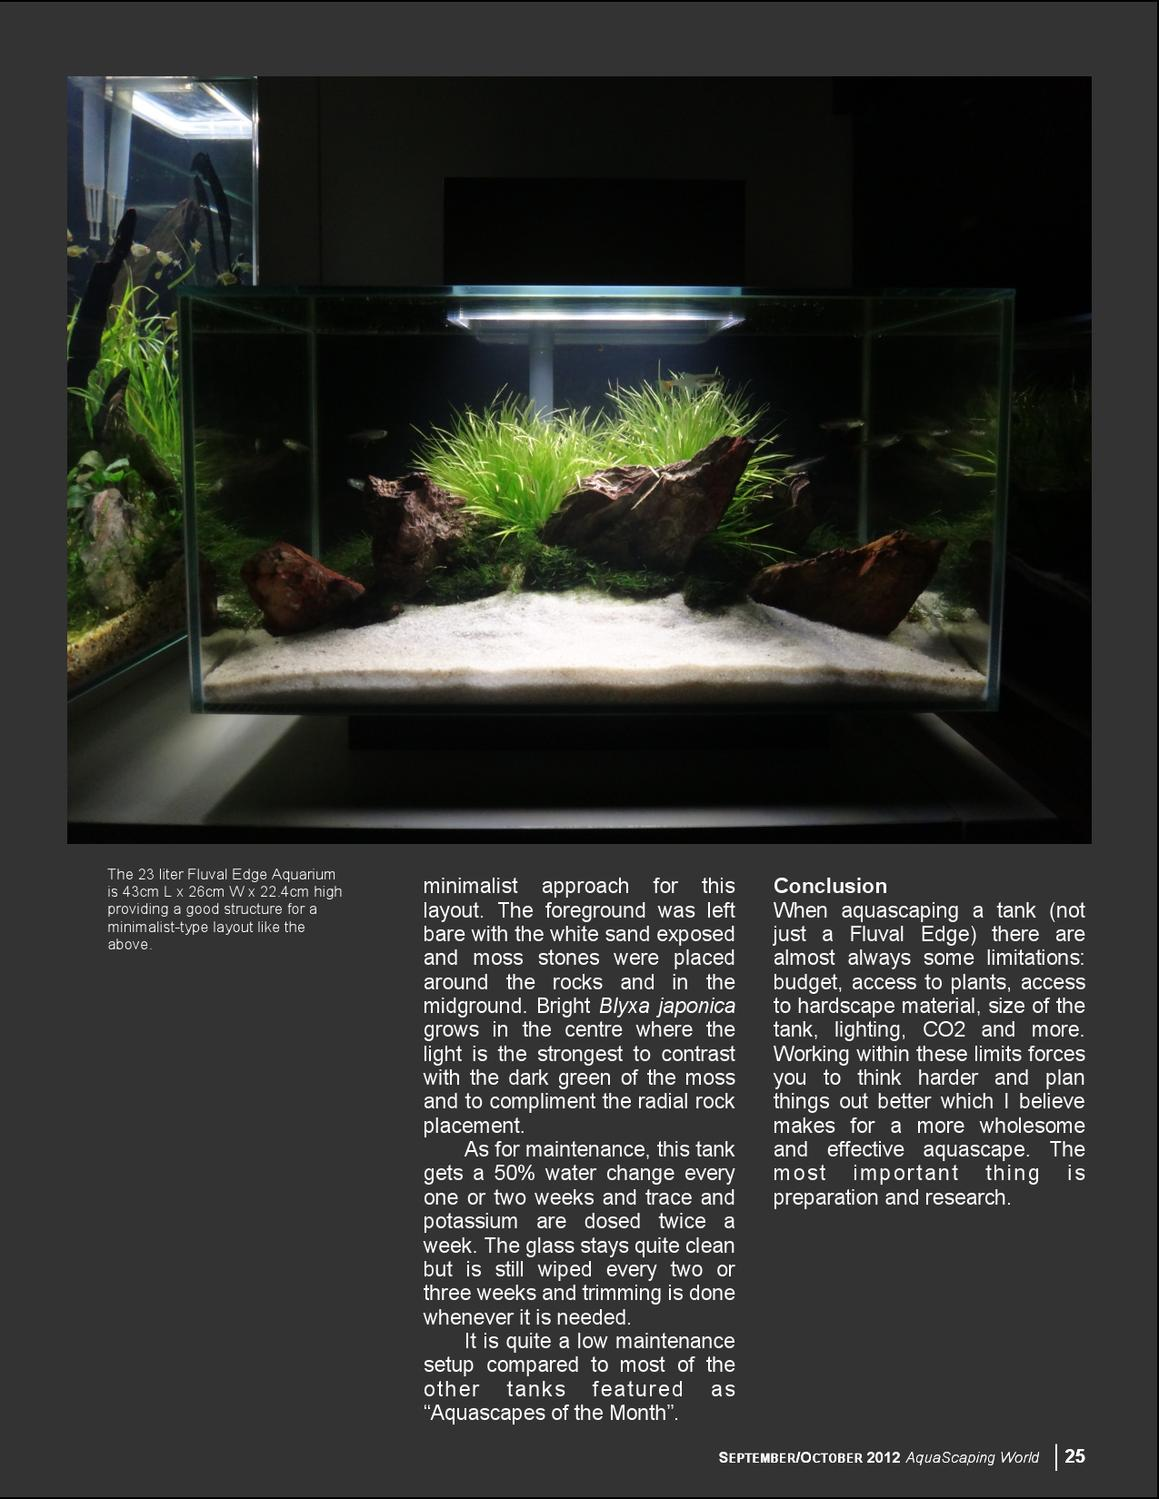 AquaScaping World Magazine September/October 2012 by John ...